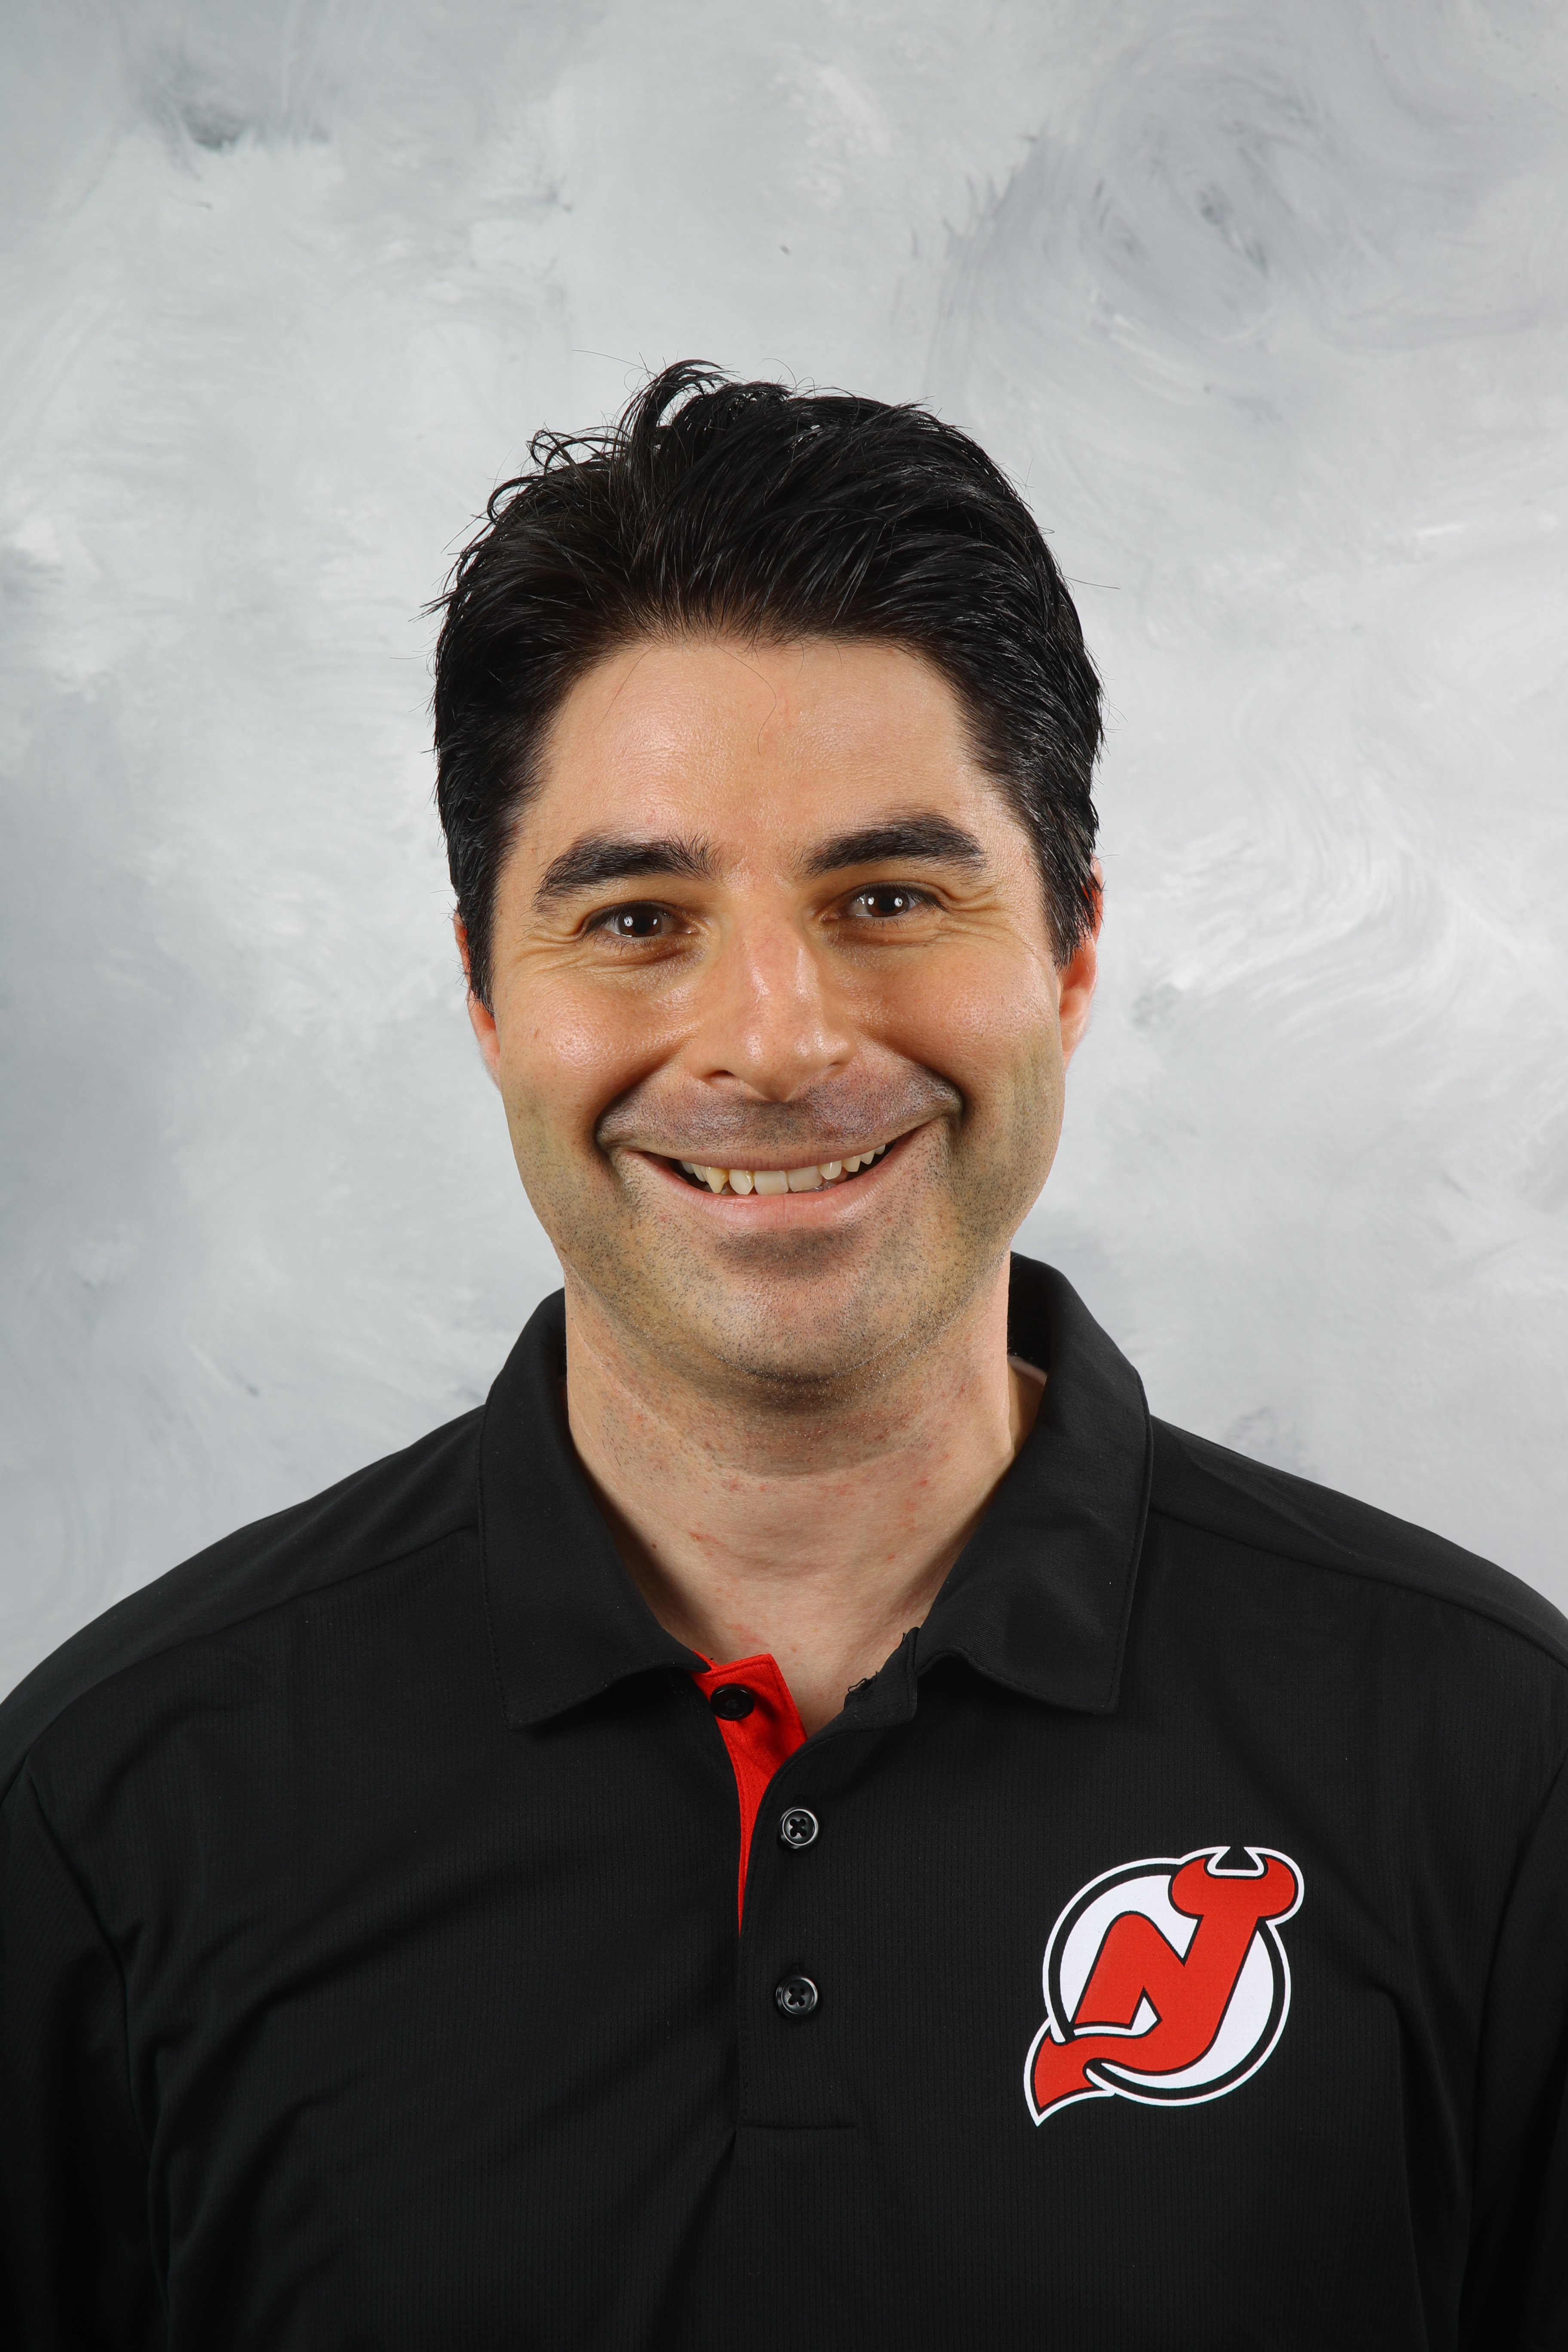 Chris Scoppetto of the New Jersey Devils